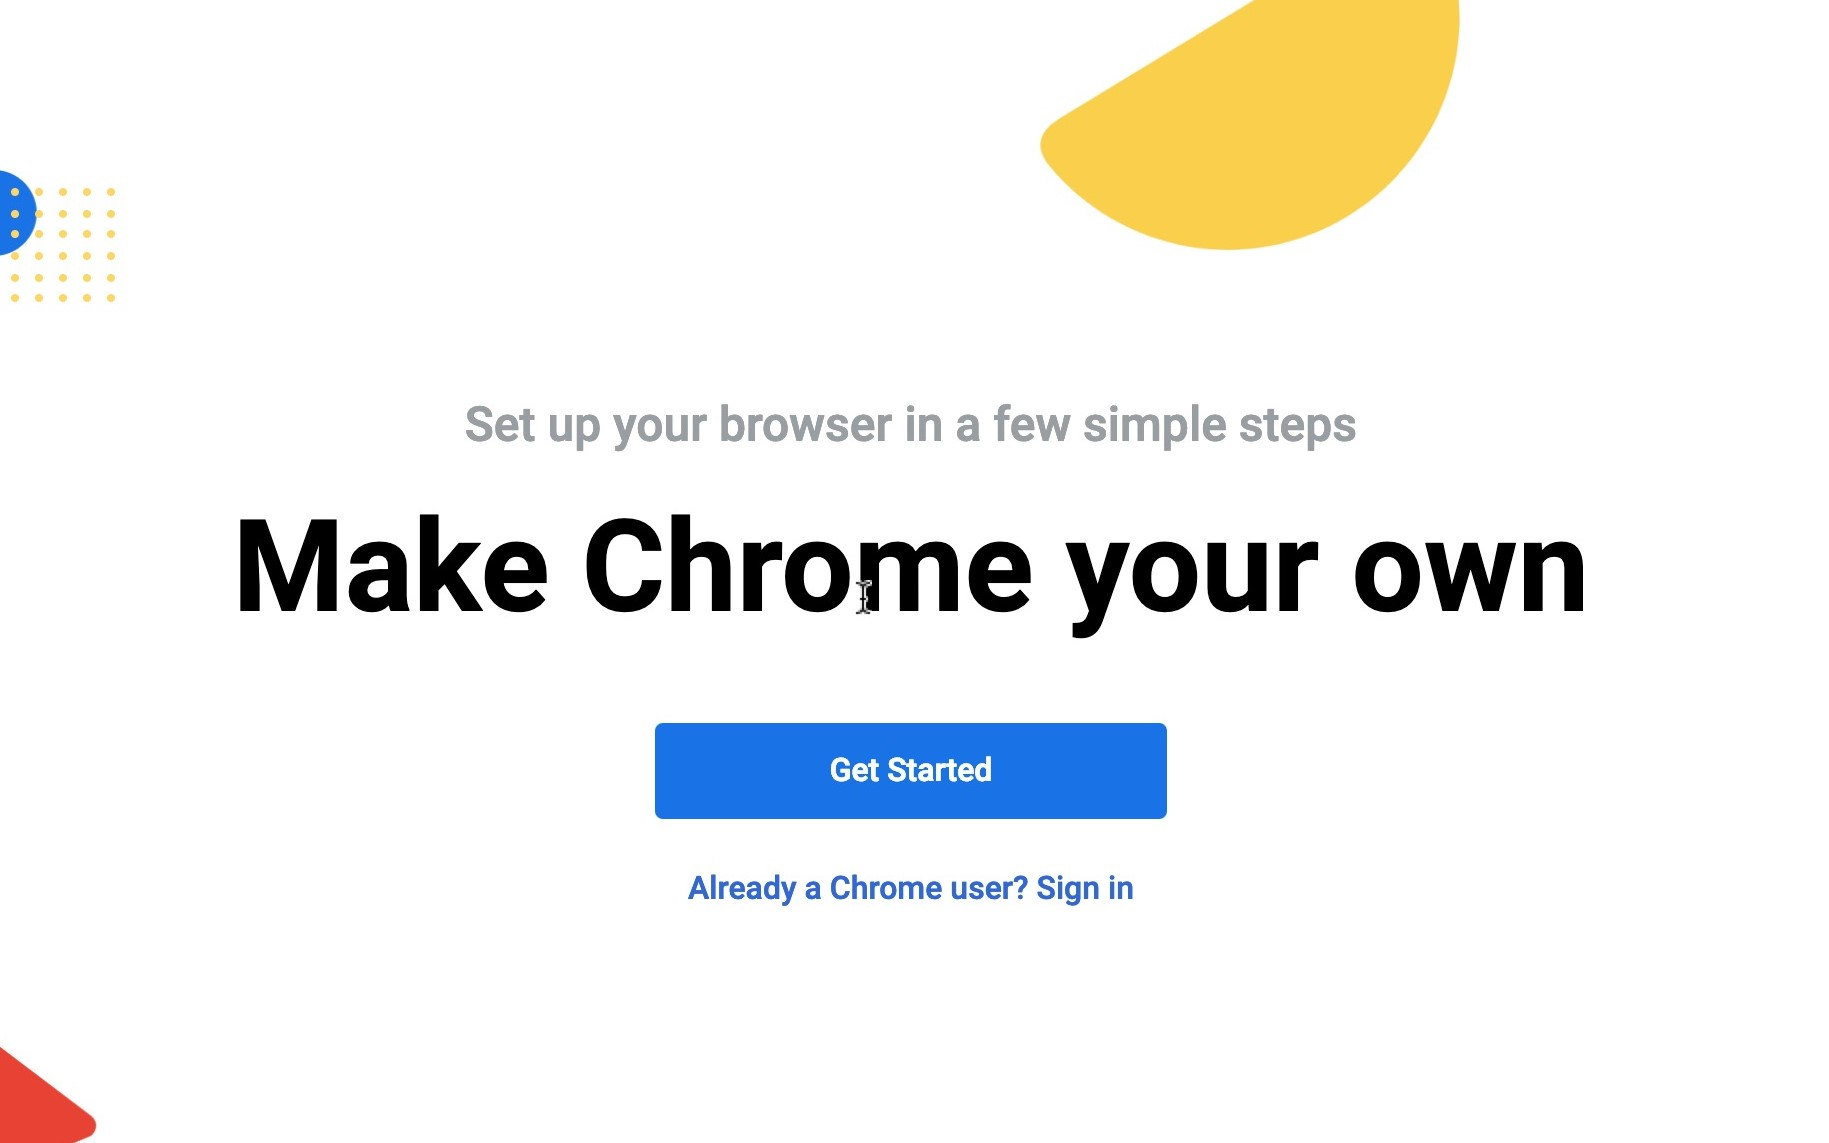 Chrome testing colorful new setup screen to welcome aboard users